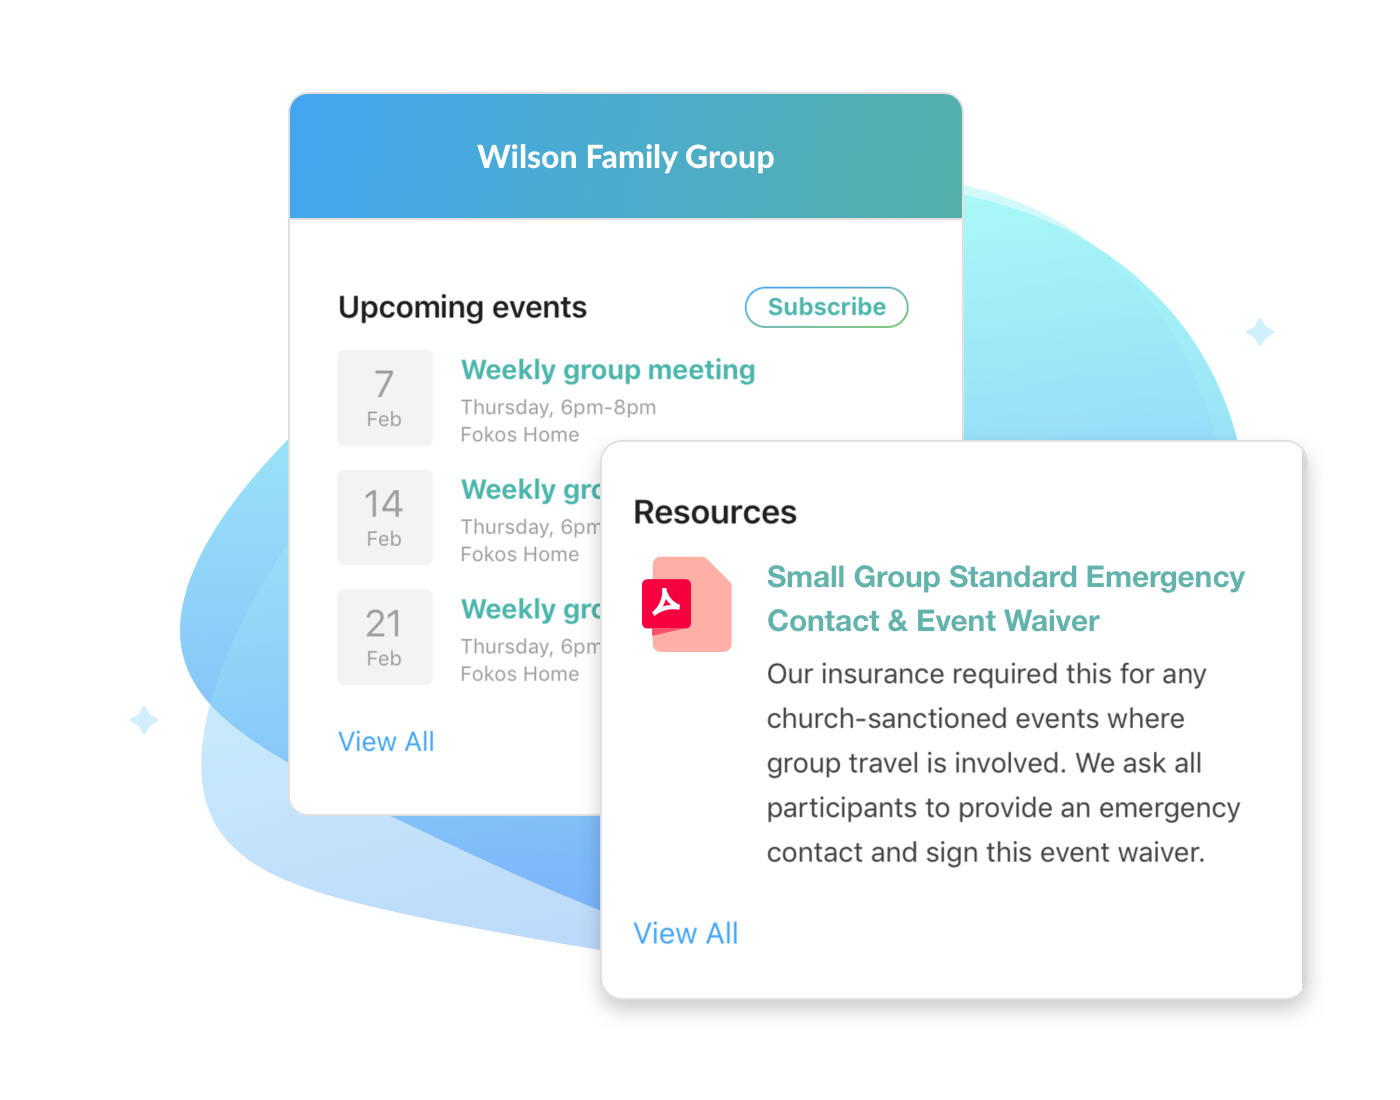 After becoming a member of a group, you can view the event calendar and shared resources. -